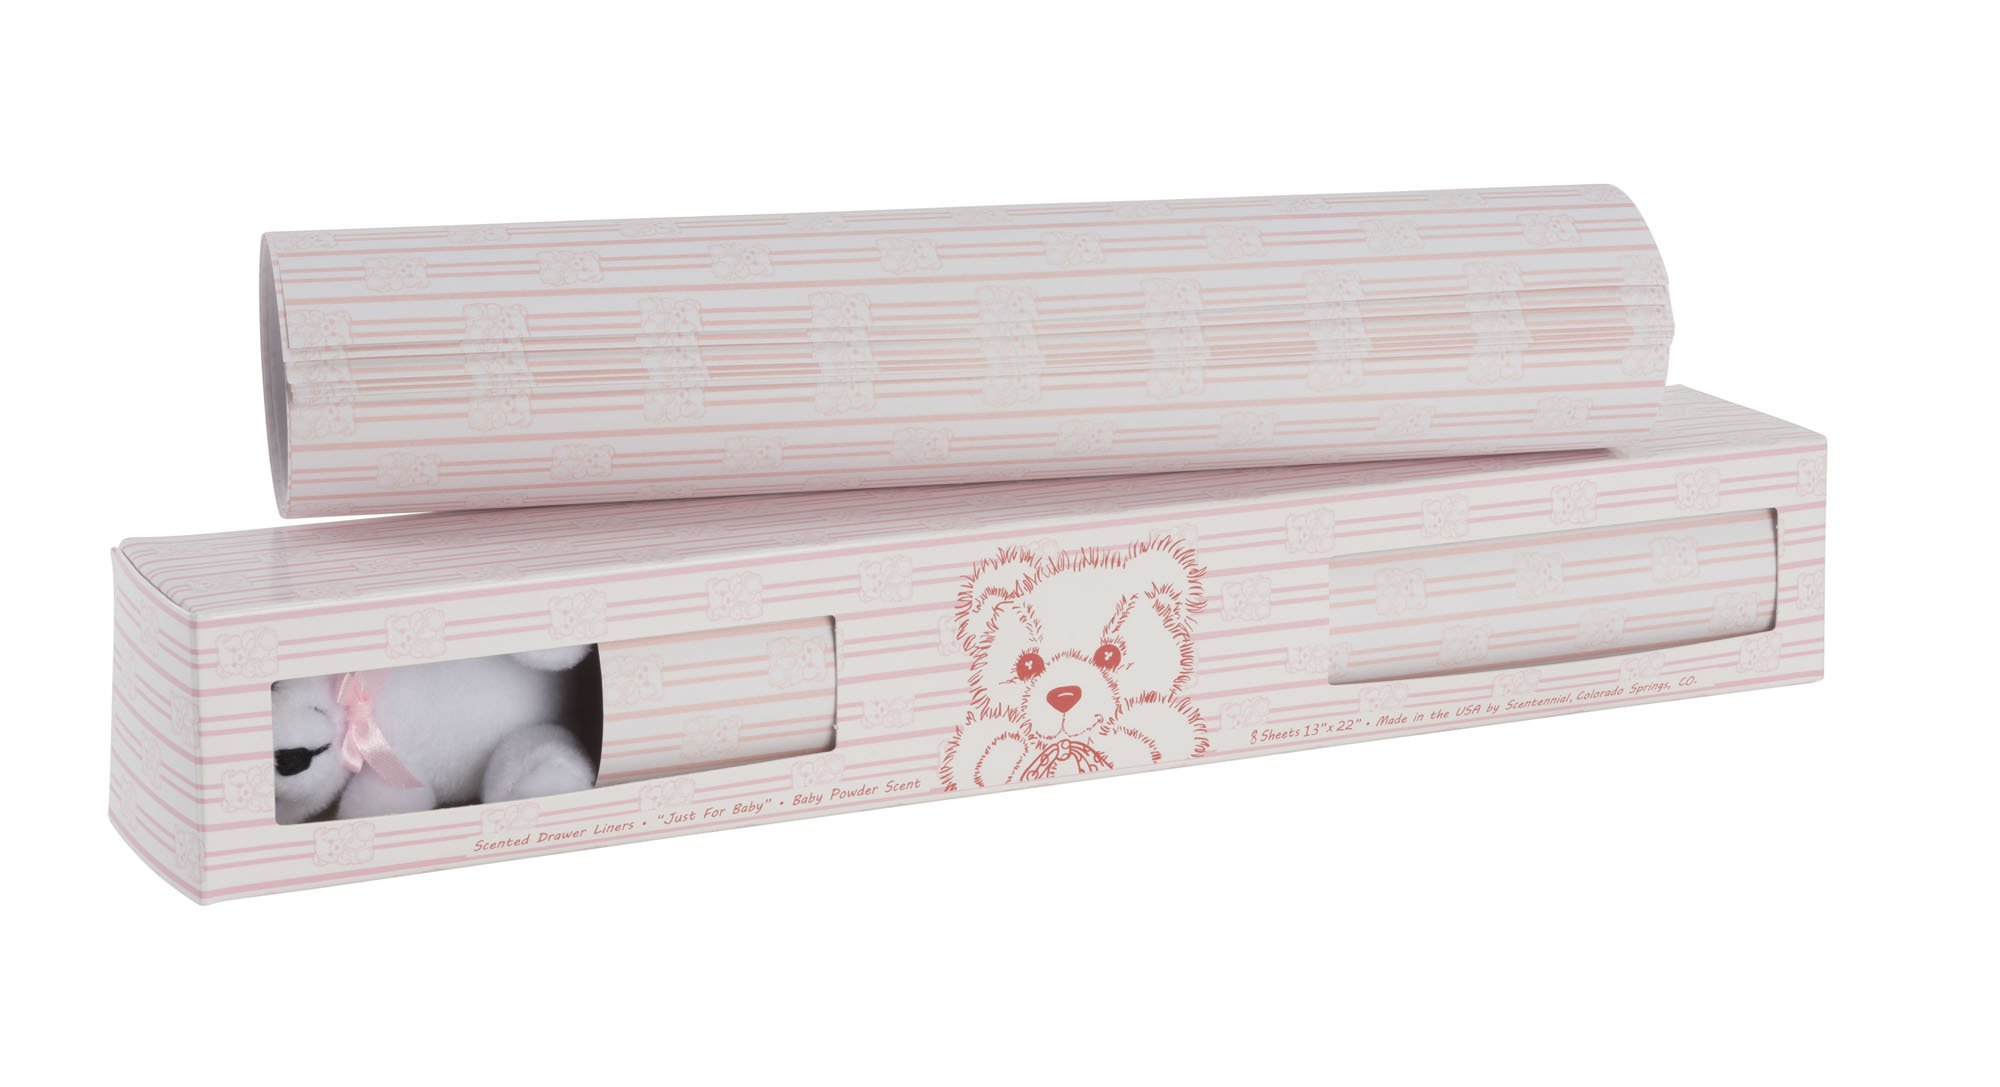 Scentennials BABY ORIGINAL PINK WITH TEDDY BEAR (8 SHEETS) Scented Fragrant Shelf & Drawer Liners 13'' x 22'' - Great for Nursery Dresser, Bathroom, Vanity & Linen Closet